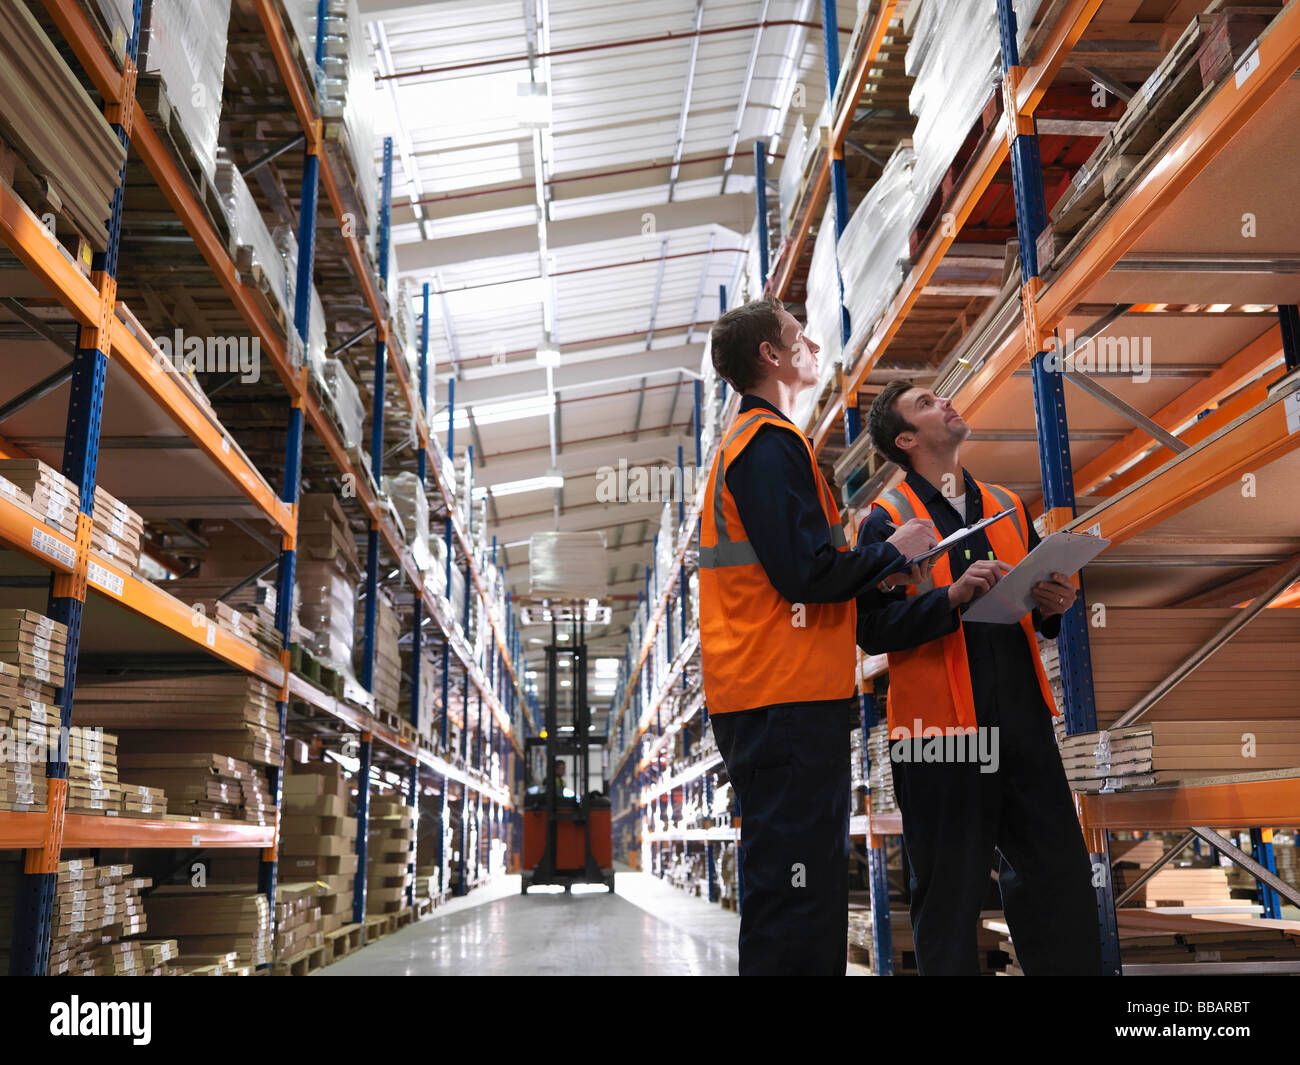 Workers And Forklift In Warehouse Stock Photo